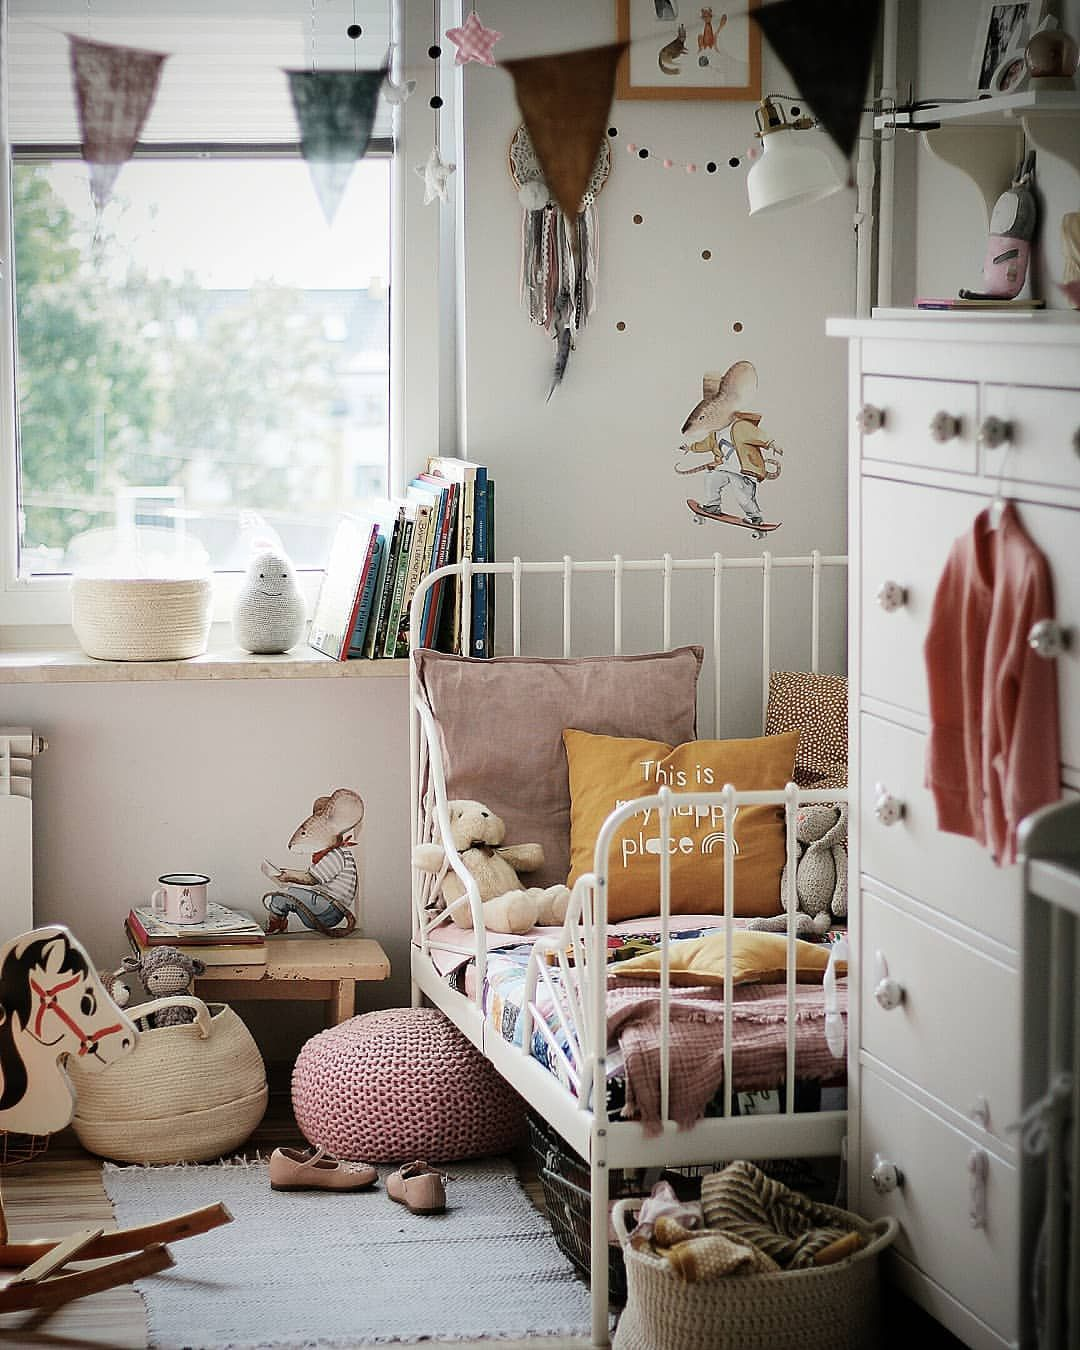 Wanddekoration Ideen Schlafzimmer Kidsroom Kids Room Pinterest Kids Bedroom Room Und Nursery